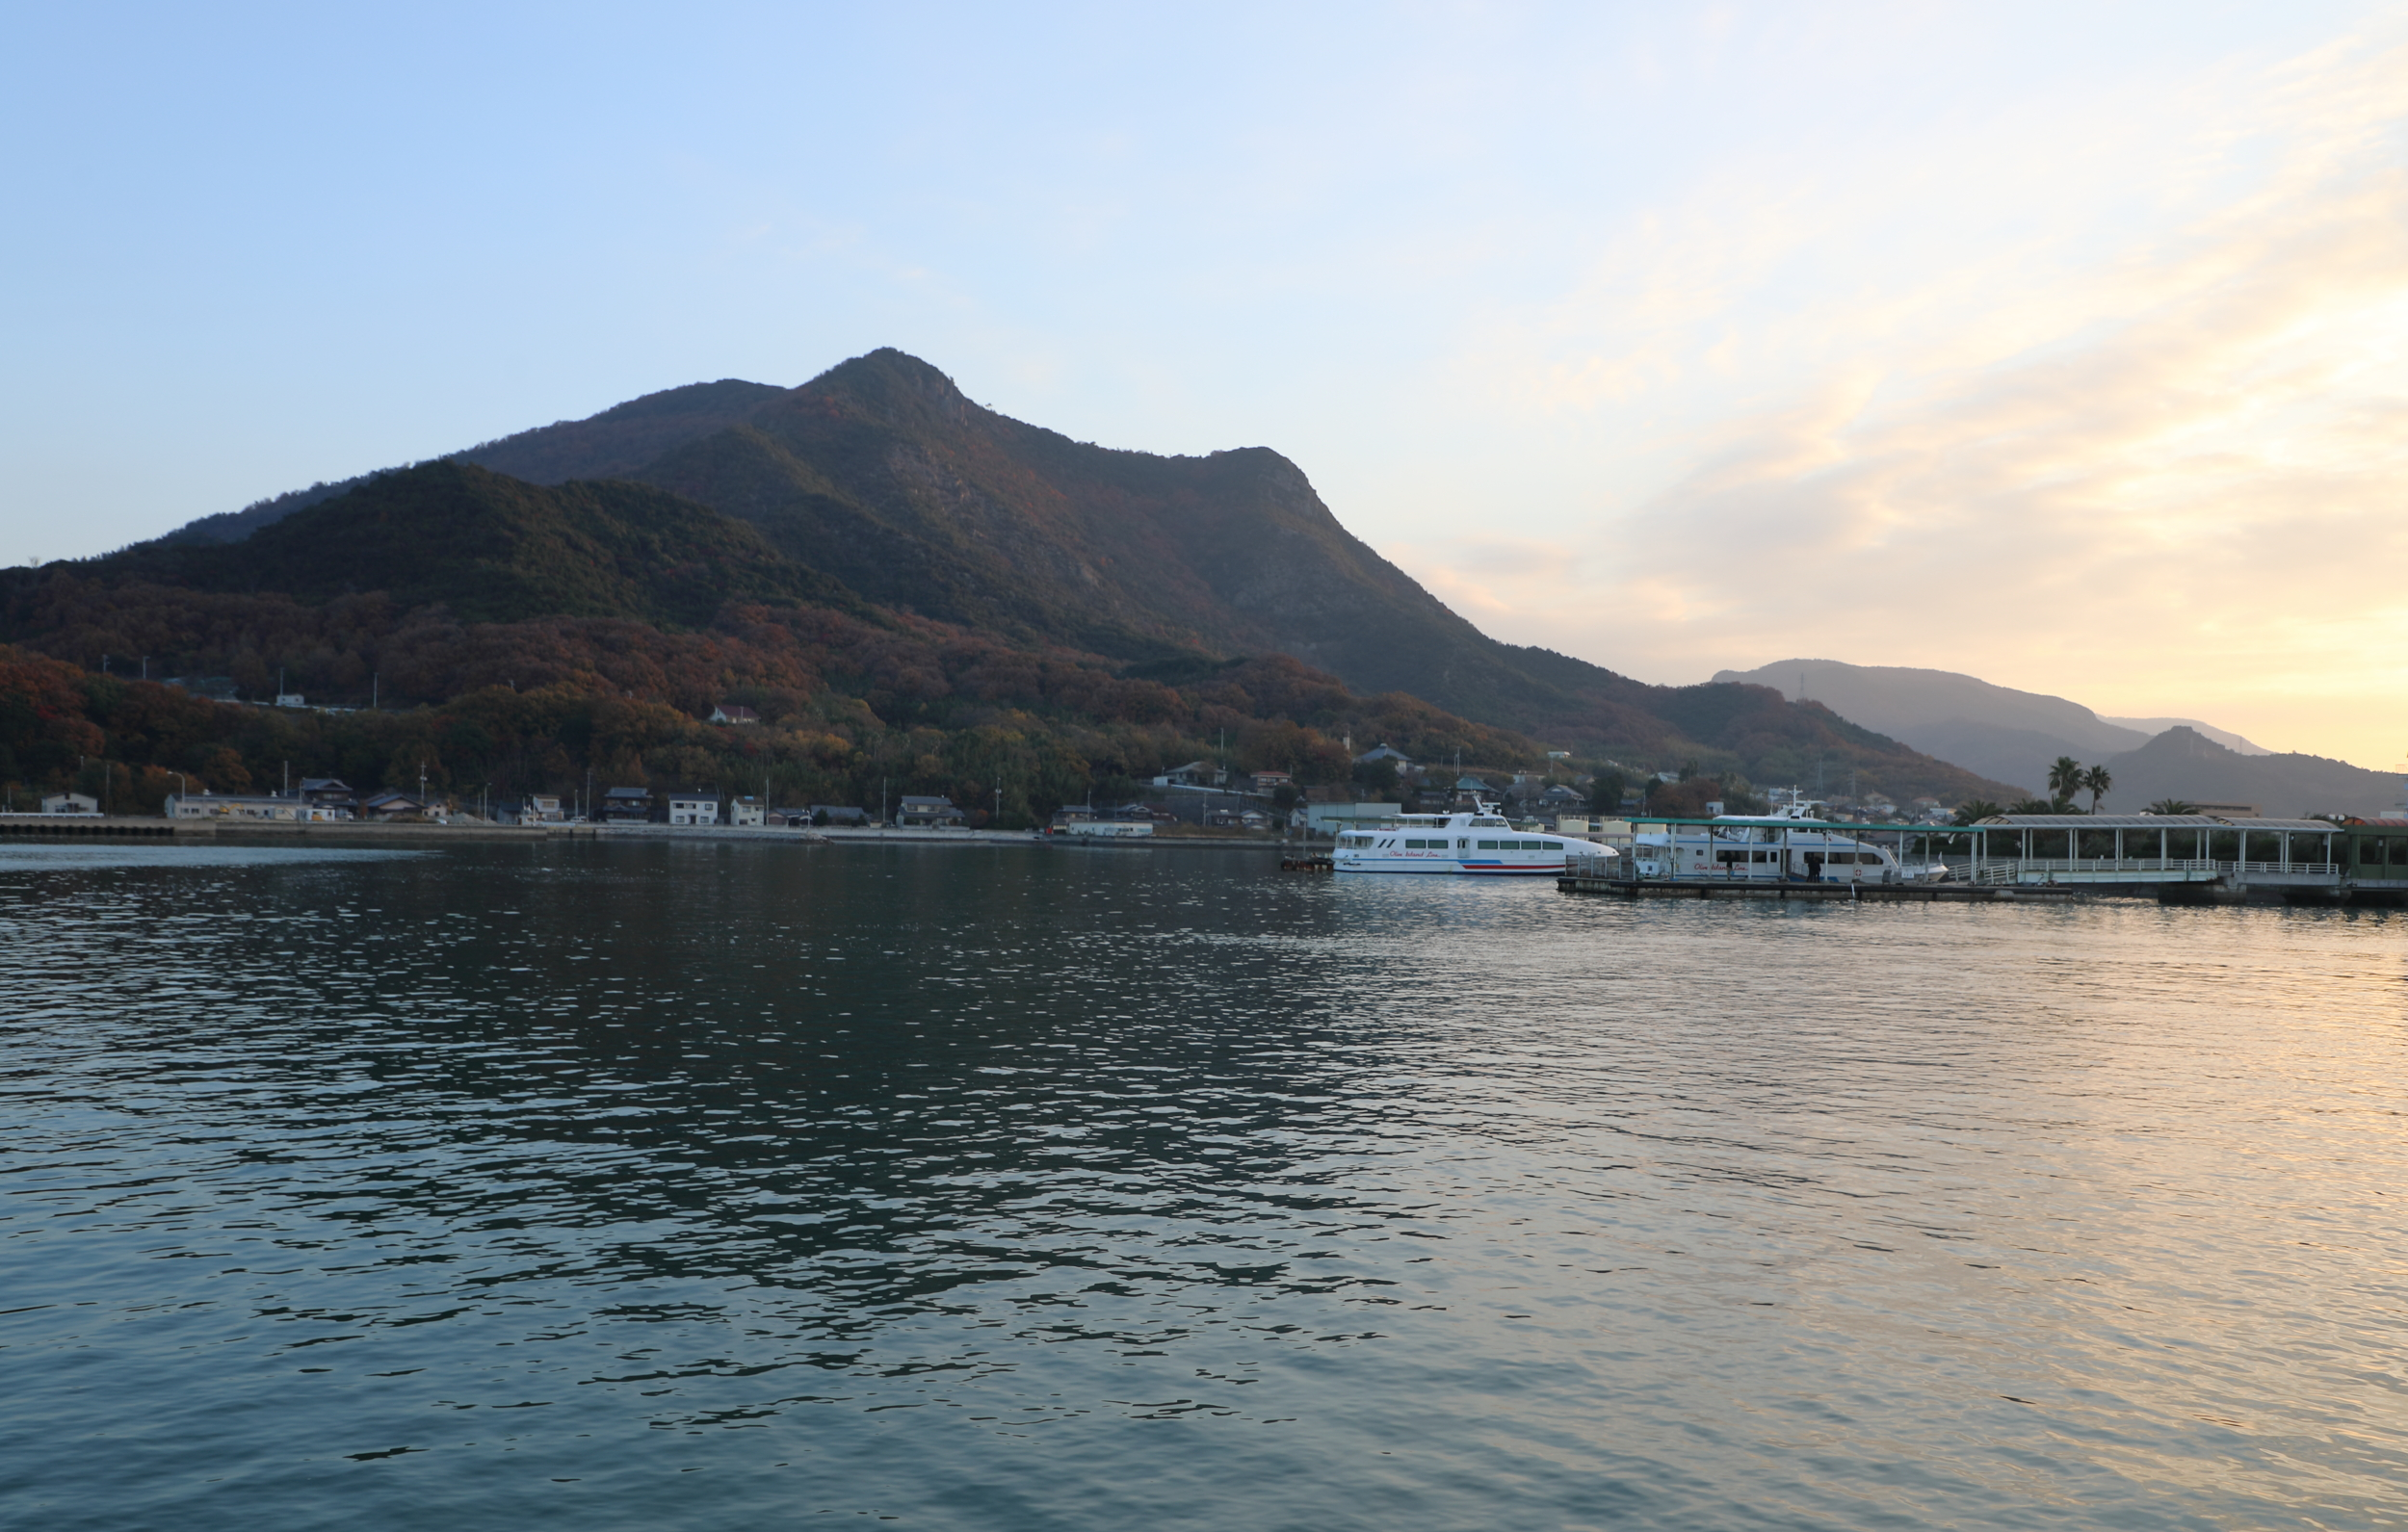 Early morning arrival at the ferry terminal on Shodoshima Island.